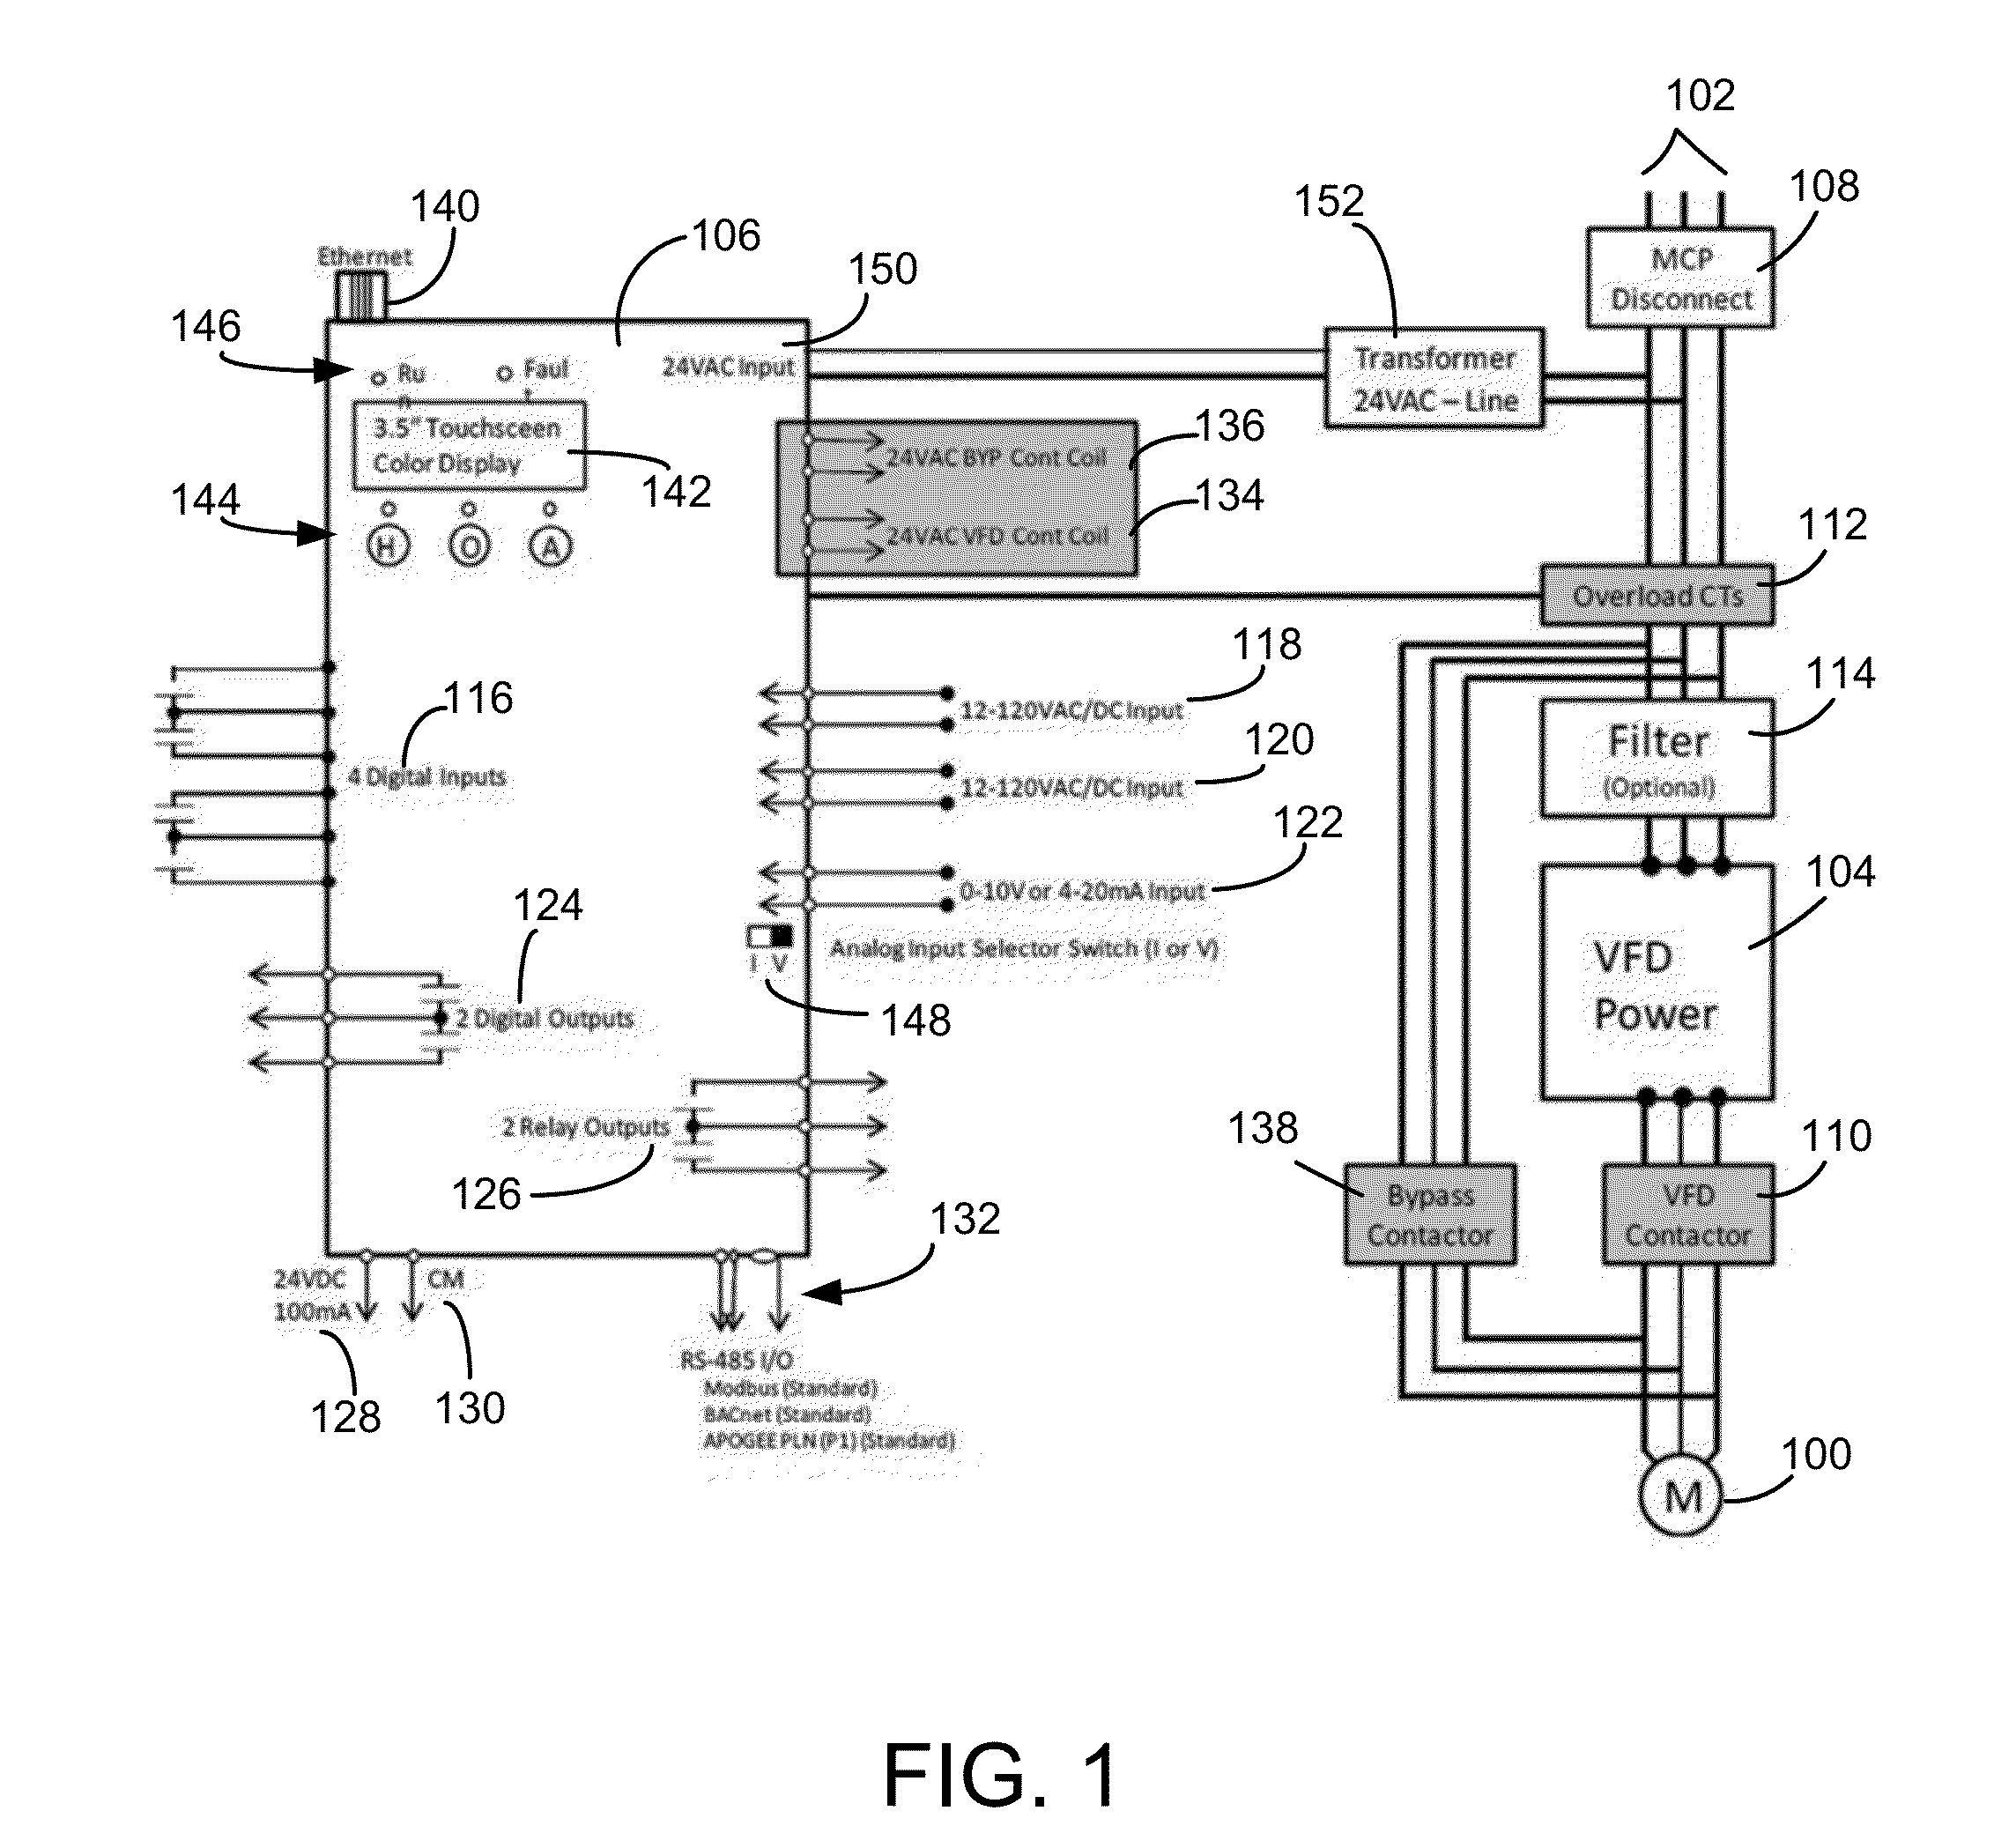 control wiring diagram of vfd switch outlet patent us20130235494 integrated bypass apparatus system